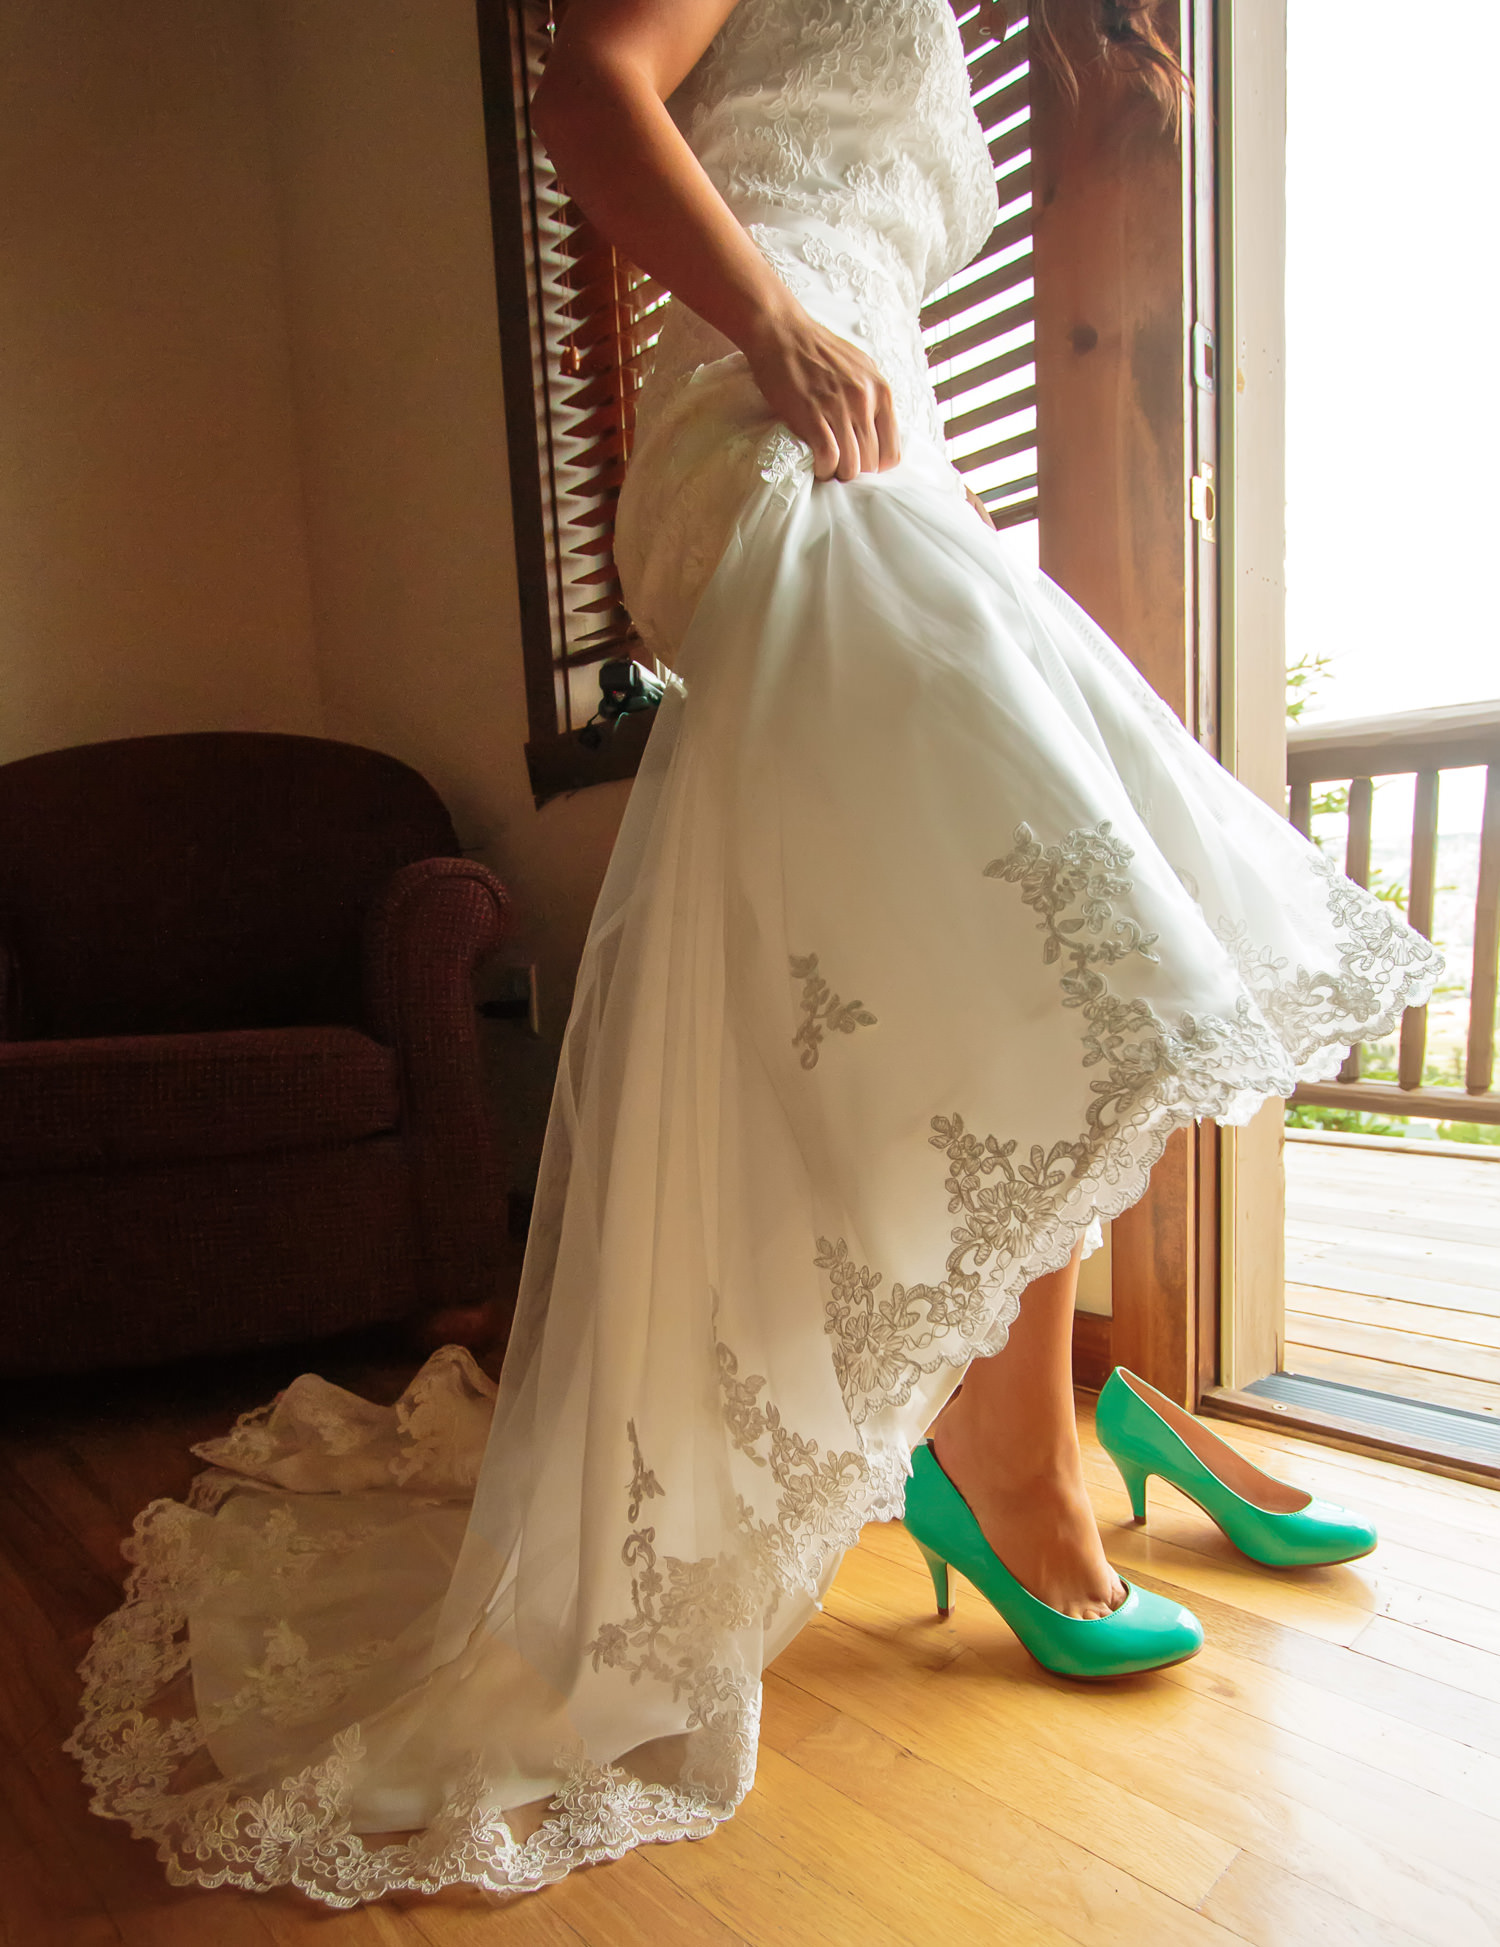 Bride slips into shoes during a Taharaa Mountain Lodge wedding in Estes Park, Colorado